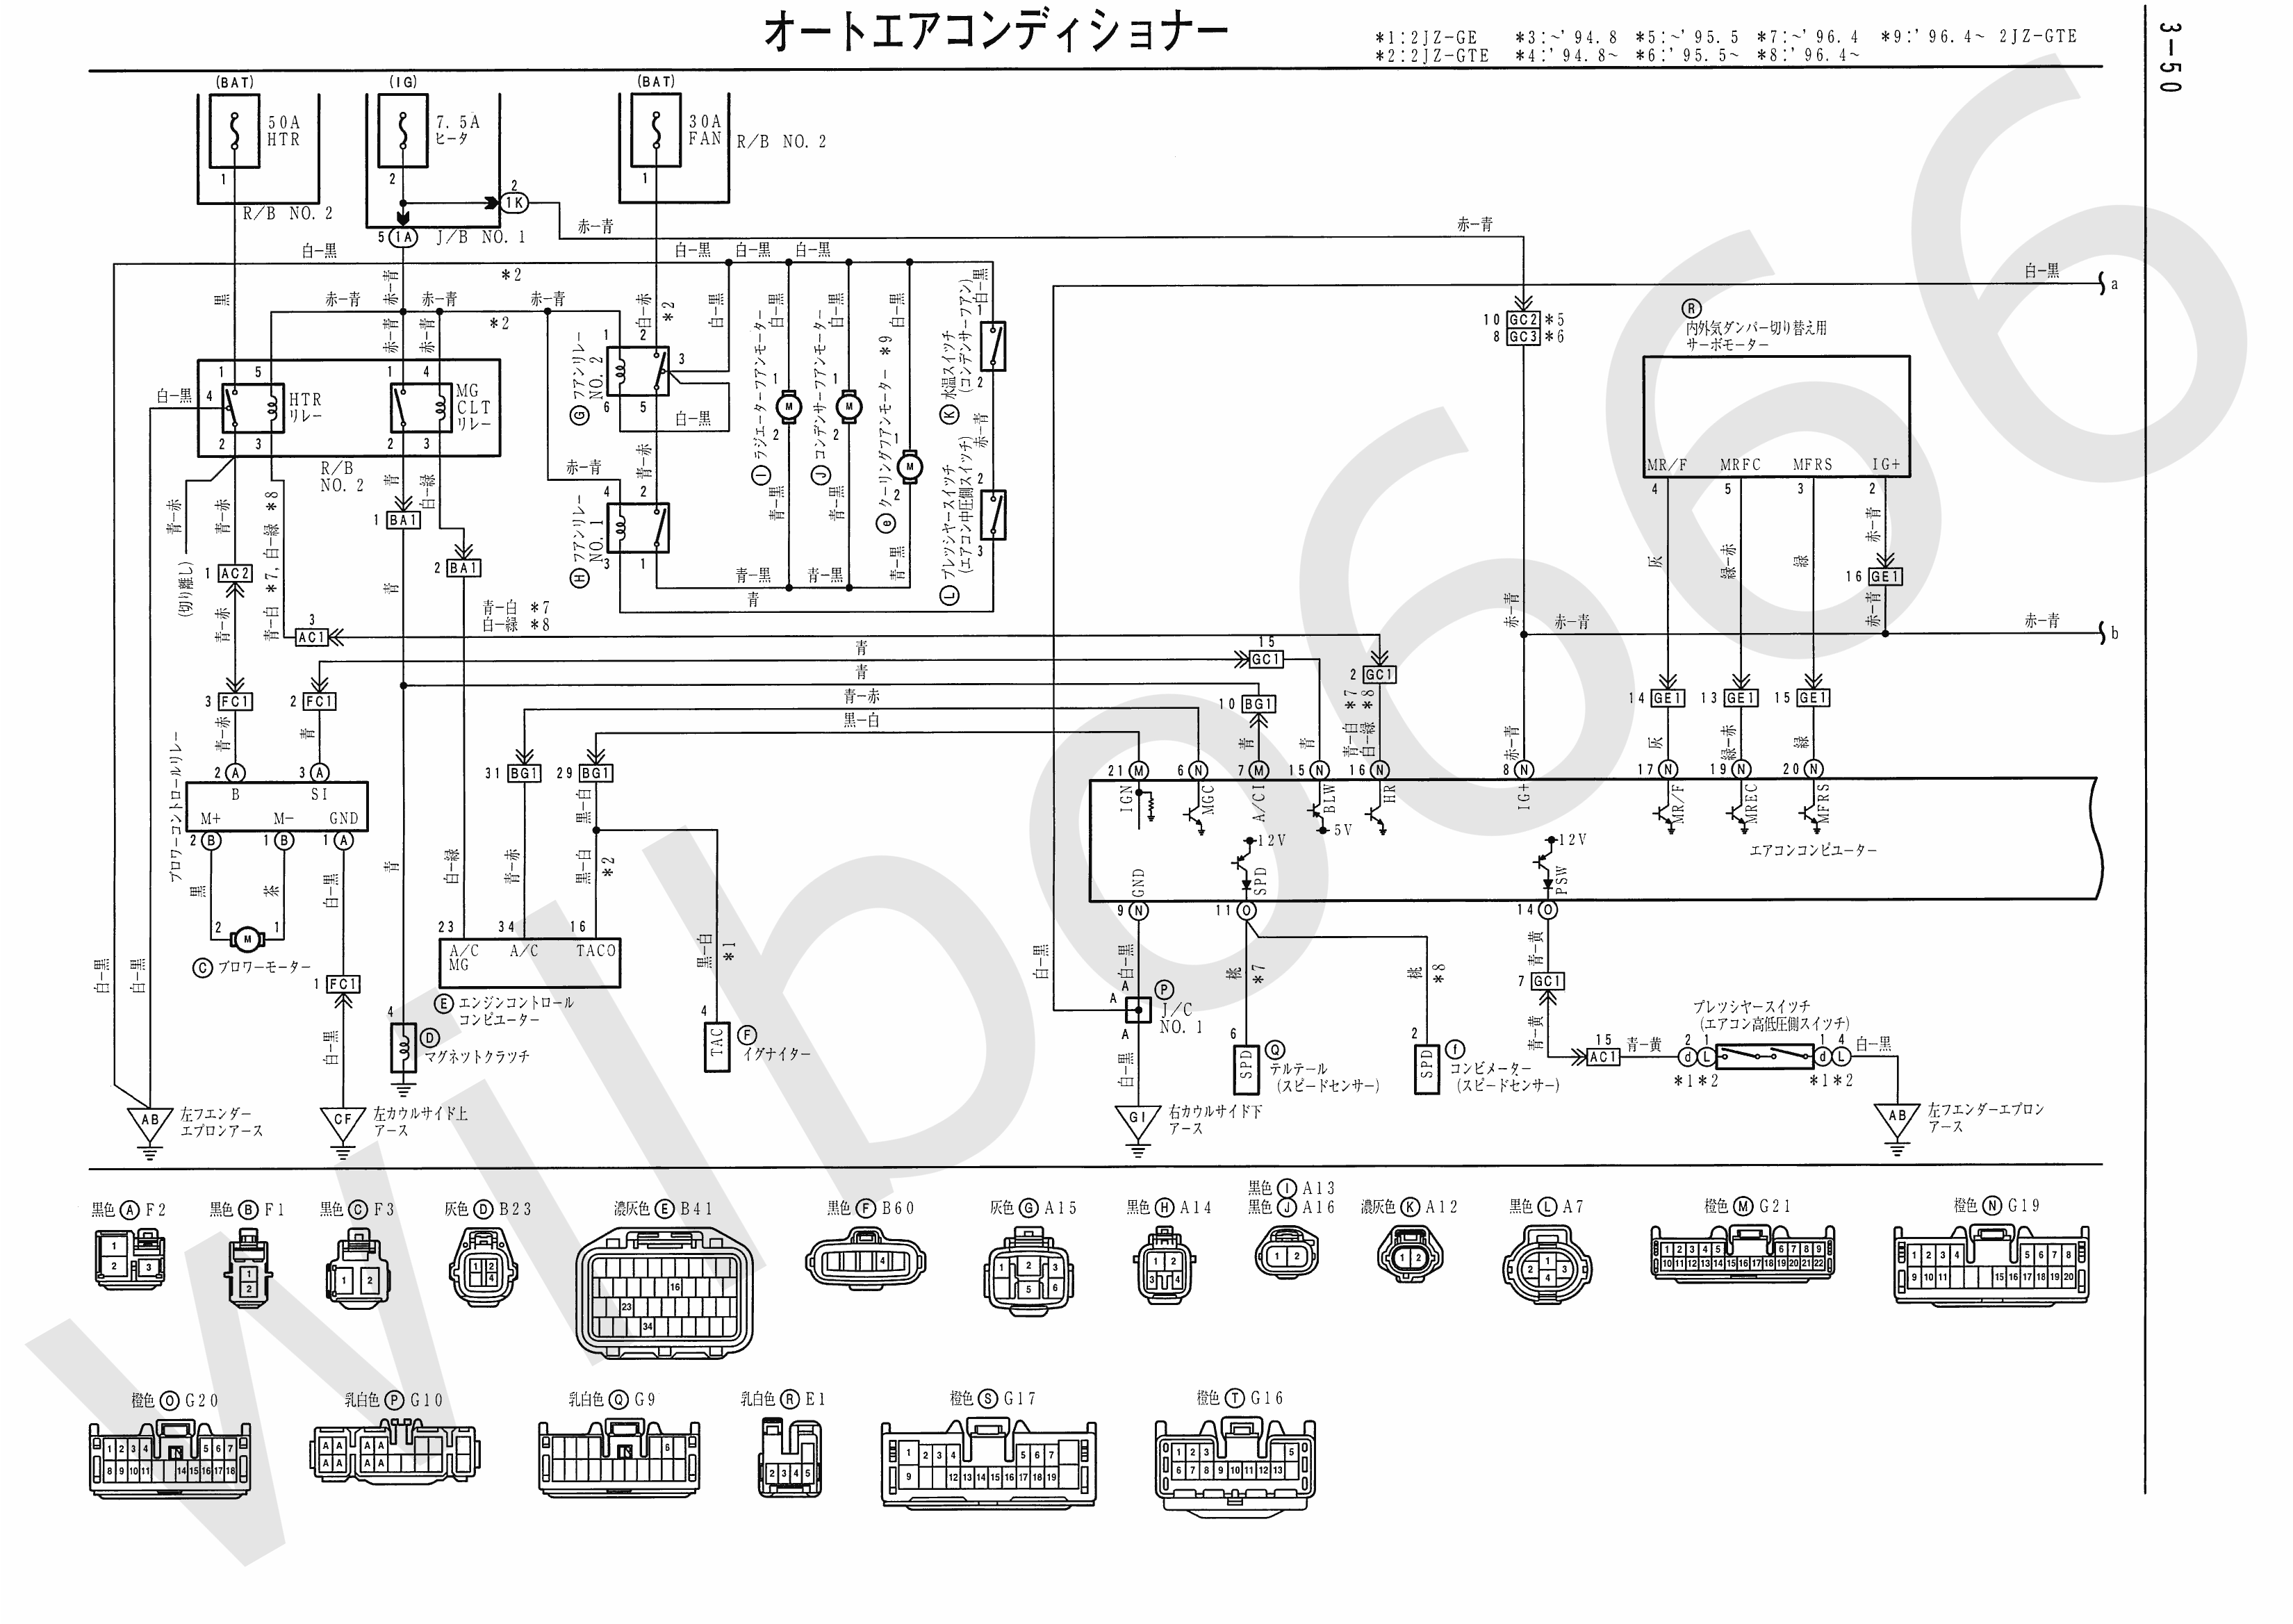 Honda Civic O2 Sensor Wiring Diagram In Addition Honda Civic O2 Sensor